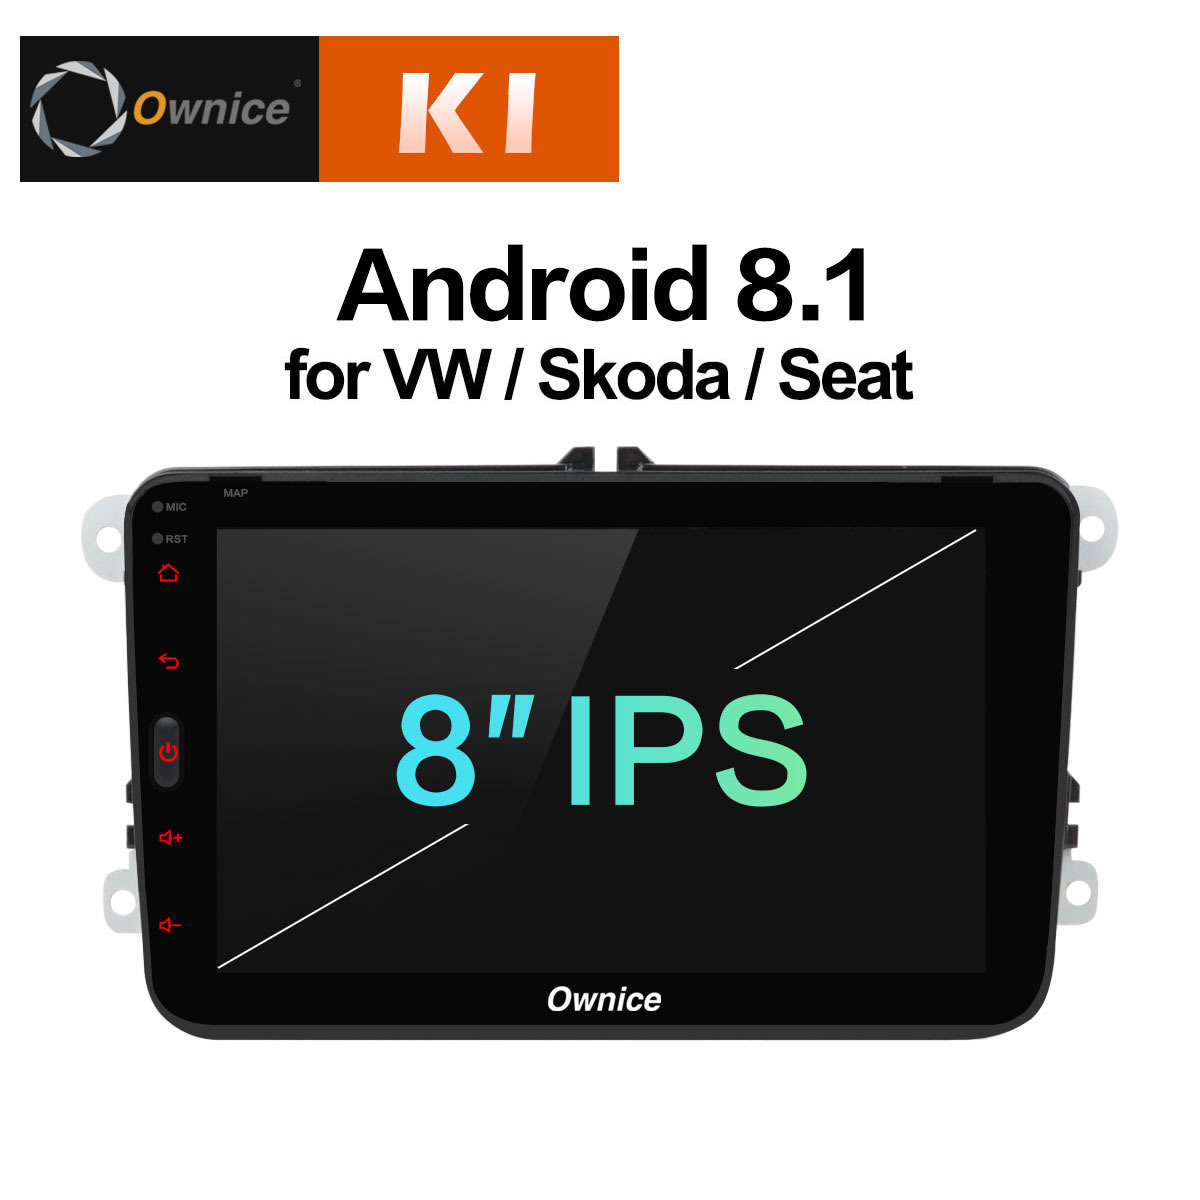 K1 android 8.1 Car Multimedia GPS Navi Autoradio Intelligent System For Volkswagen Skoda/Octavia/Fabia/Rapid/Yeti/Superb/VW/Seat эмблема для авто vw original oem vw skoda skoda fabia octavia roomster